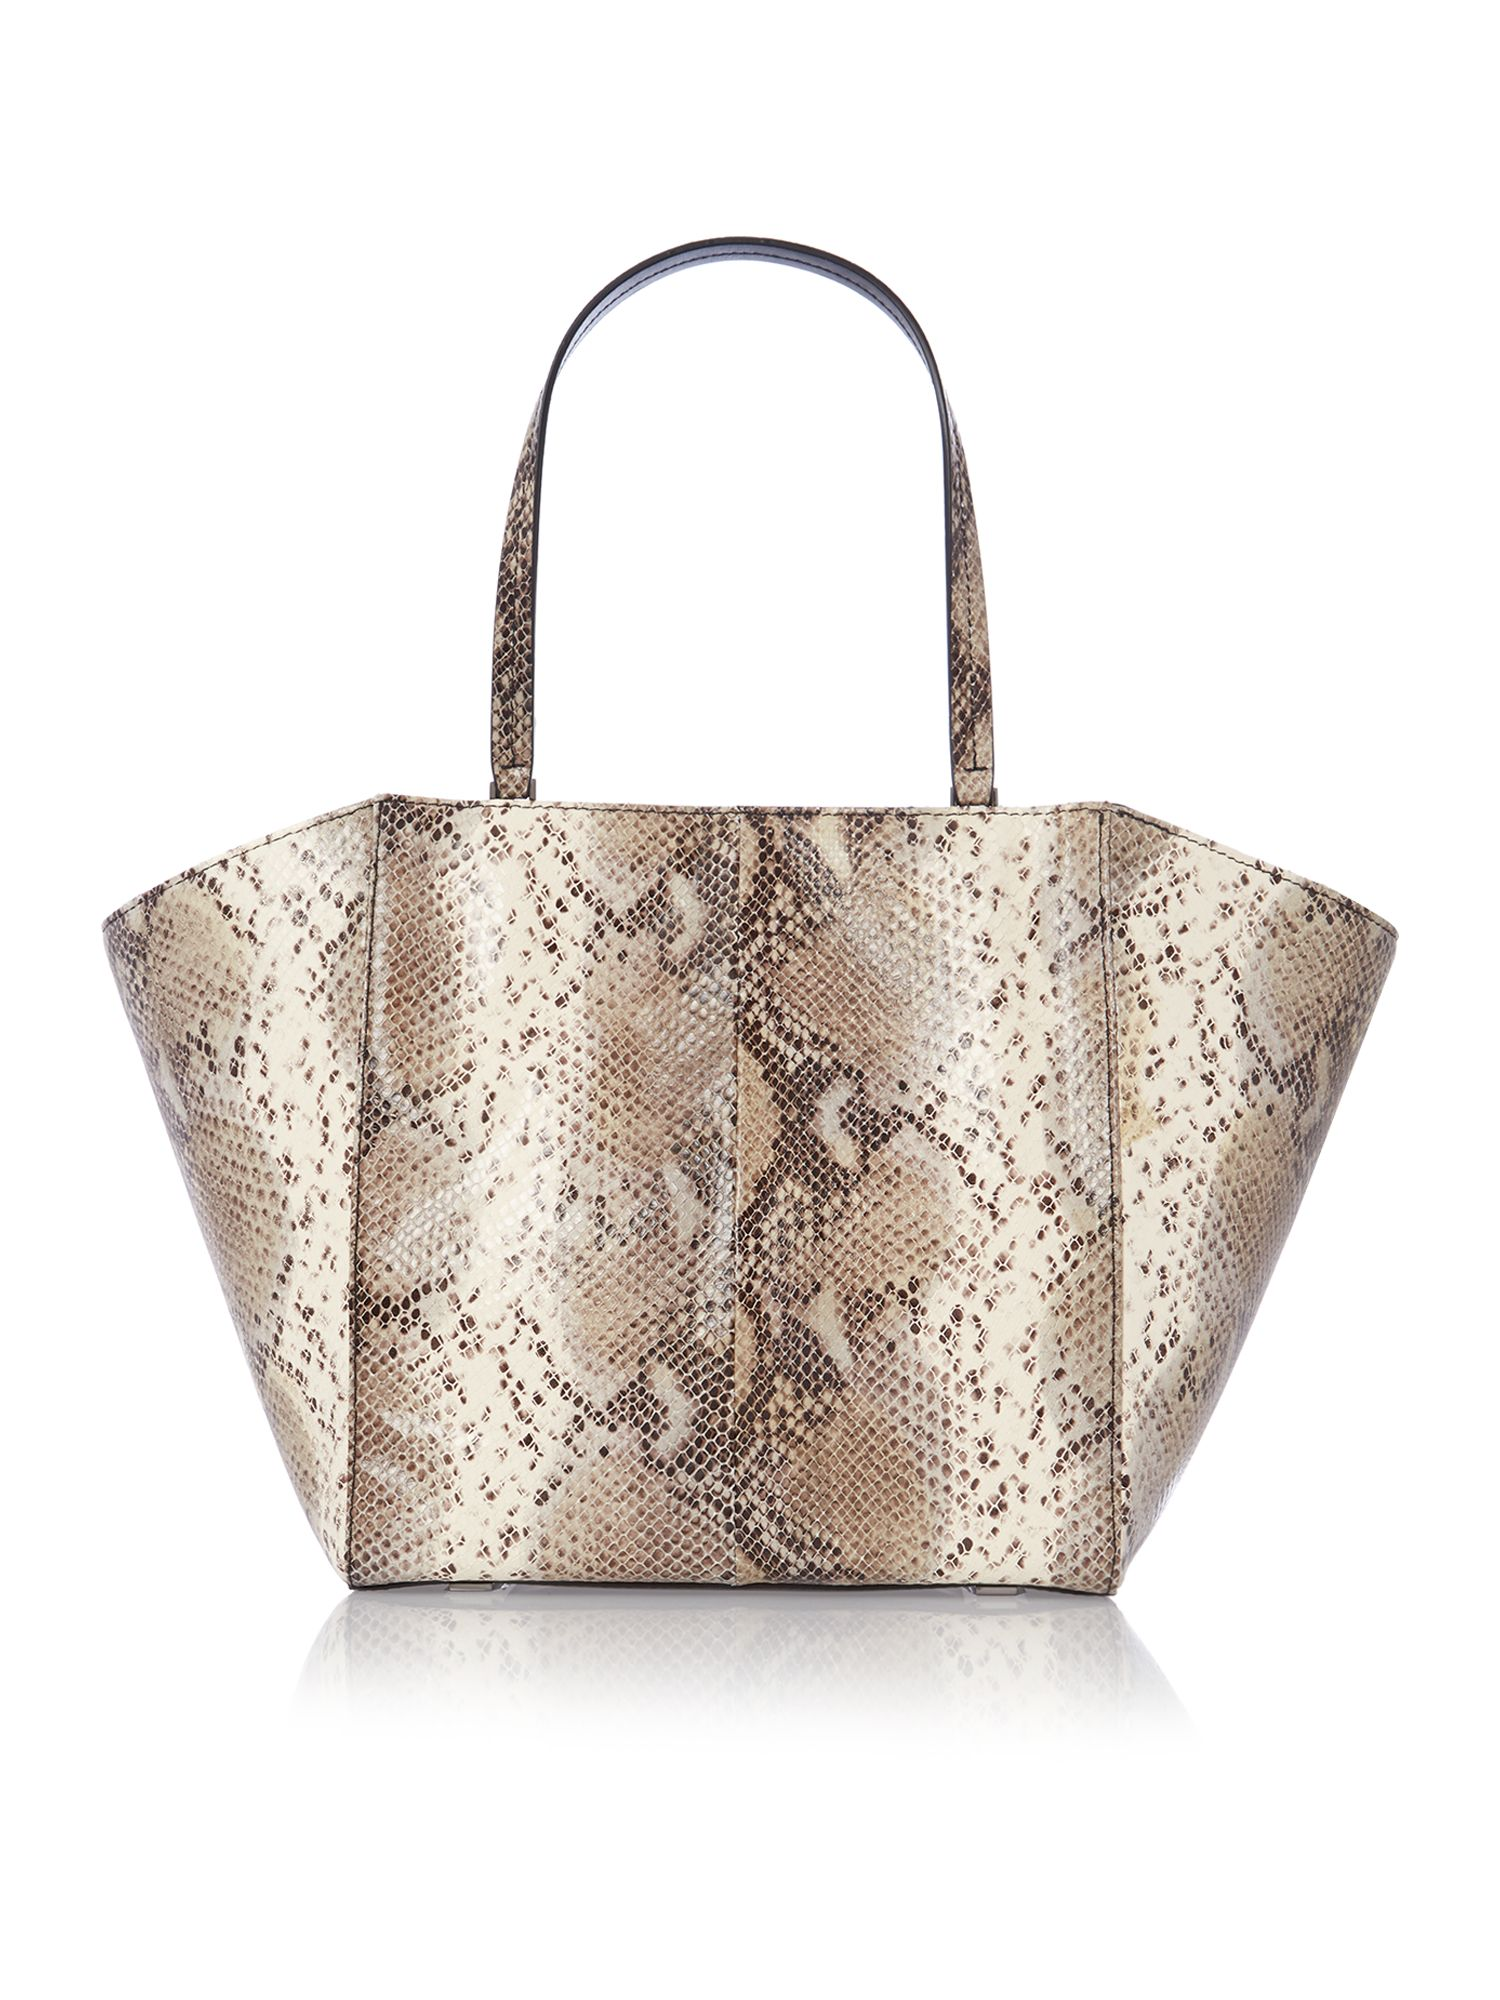 Large green snakeskin tote bag